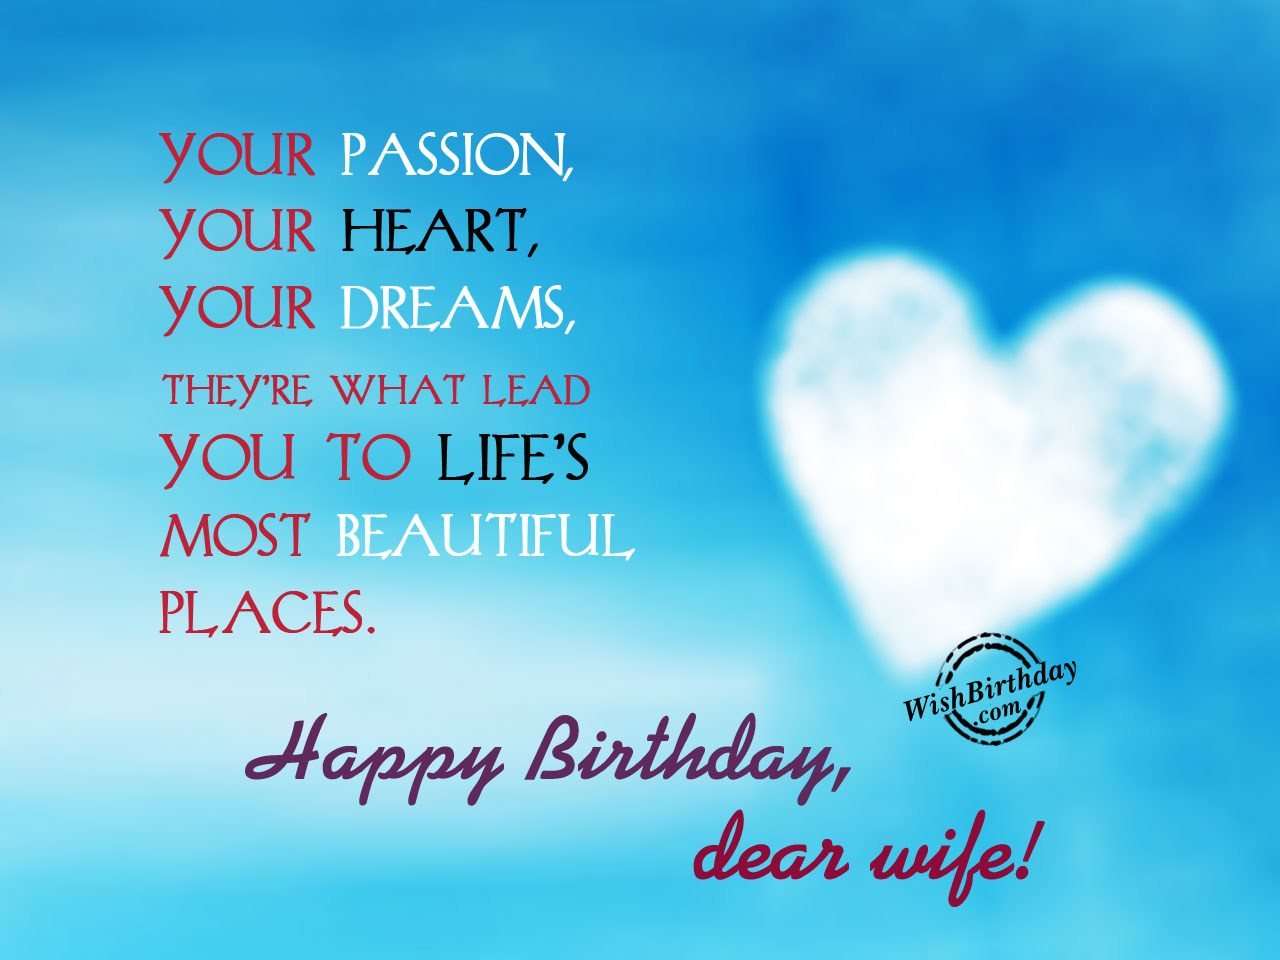 Birthday wishes for wife birthday images pictures your passion your heart m4hsunfo